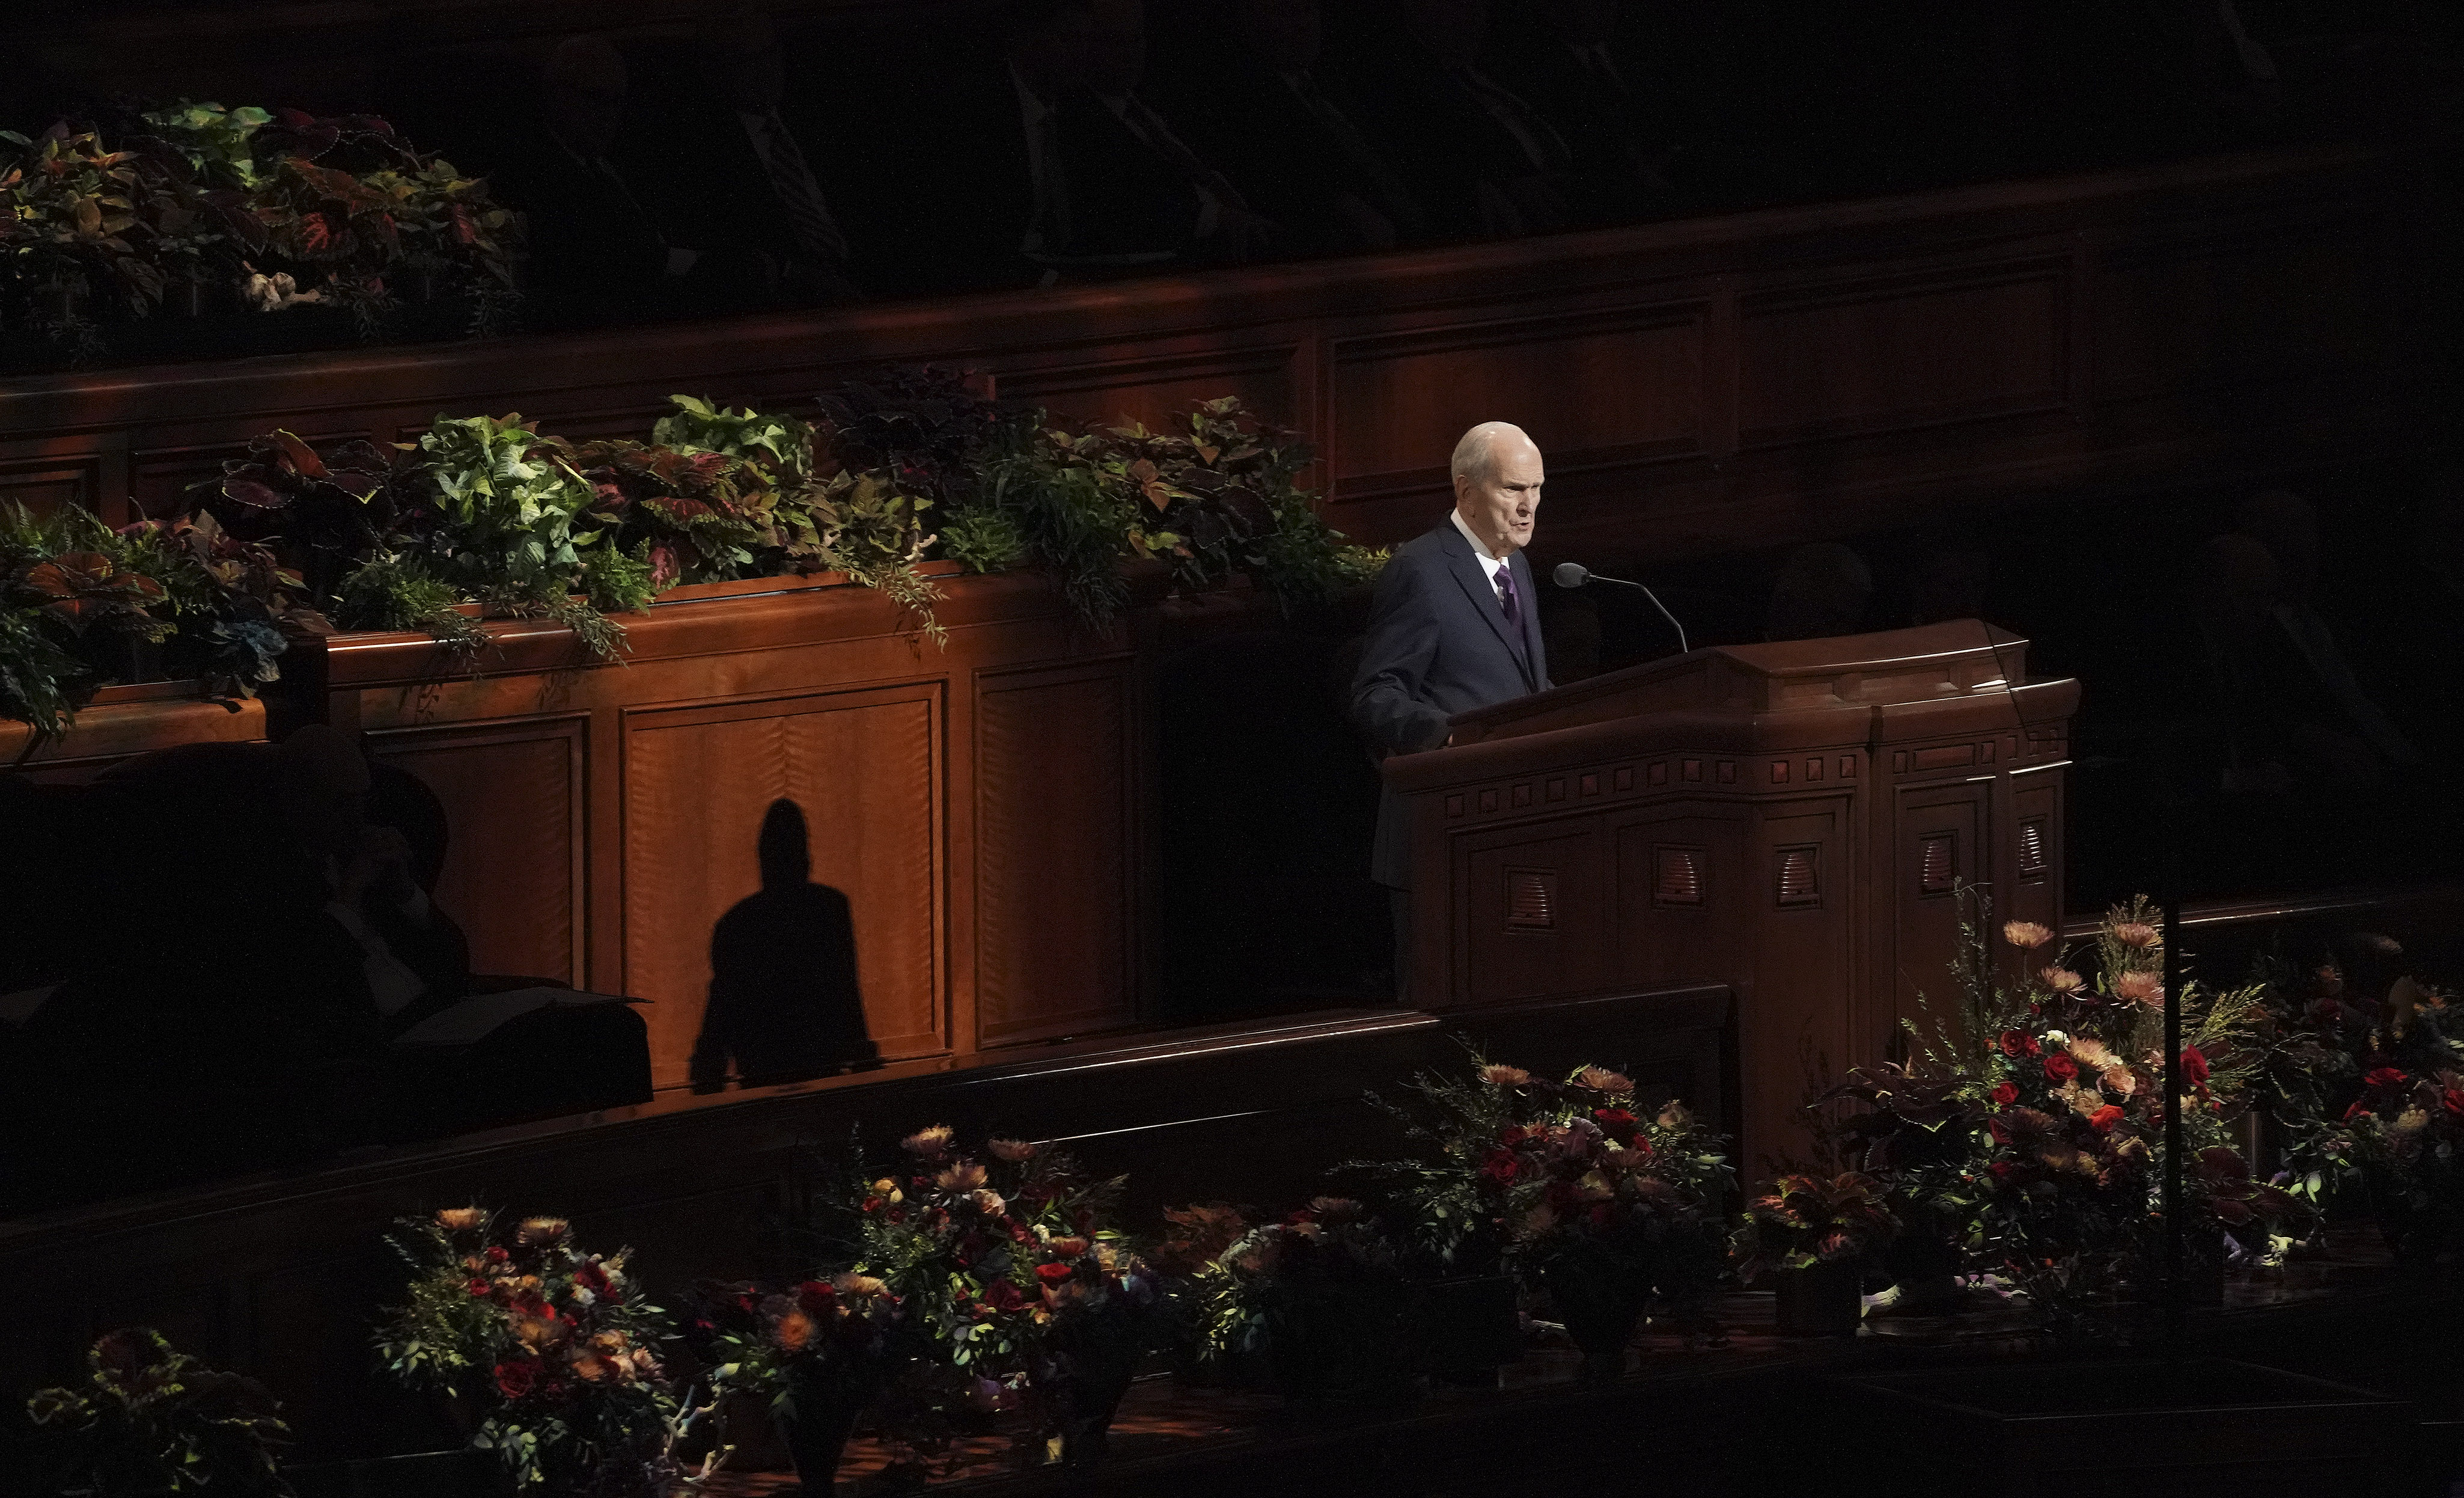 President Russell M. Nelson speaks during the Saturday afternoon session of the 189th Semiannual General Conference of The Church of Jesus Christ of Latter-day Saints in the Conference Center in Salt Lake City on Saturday, Oct. 5, 2019.